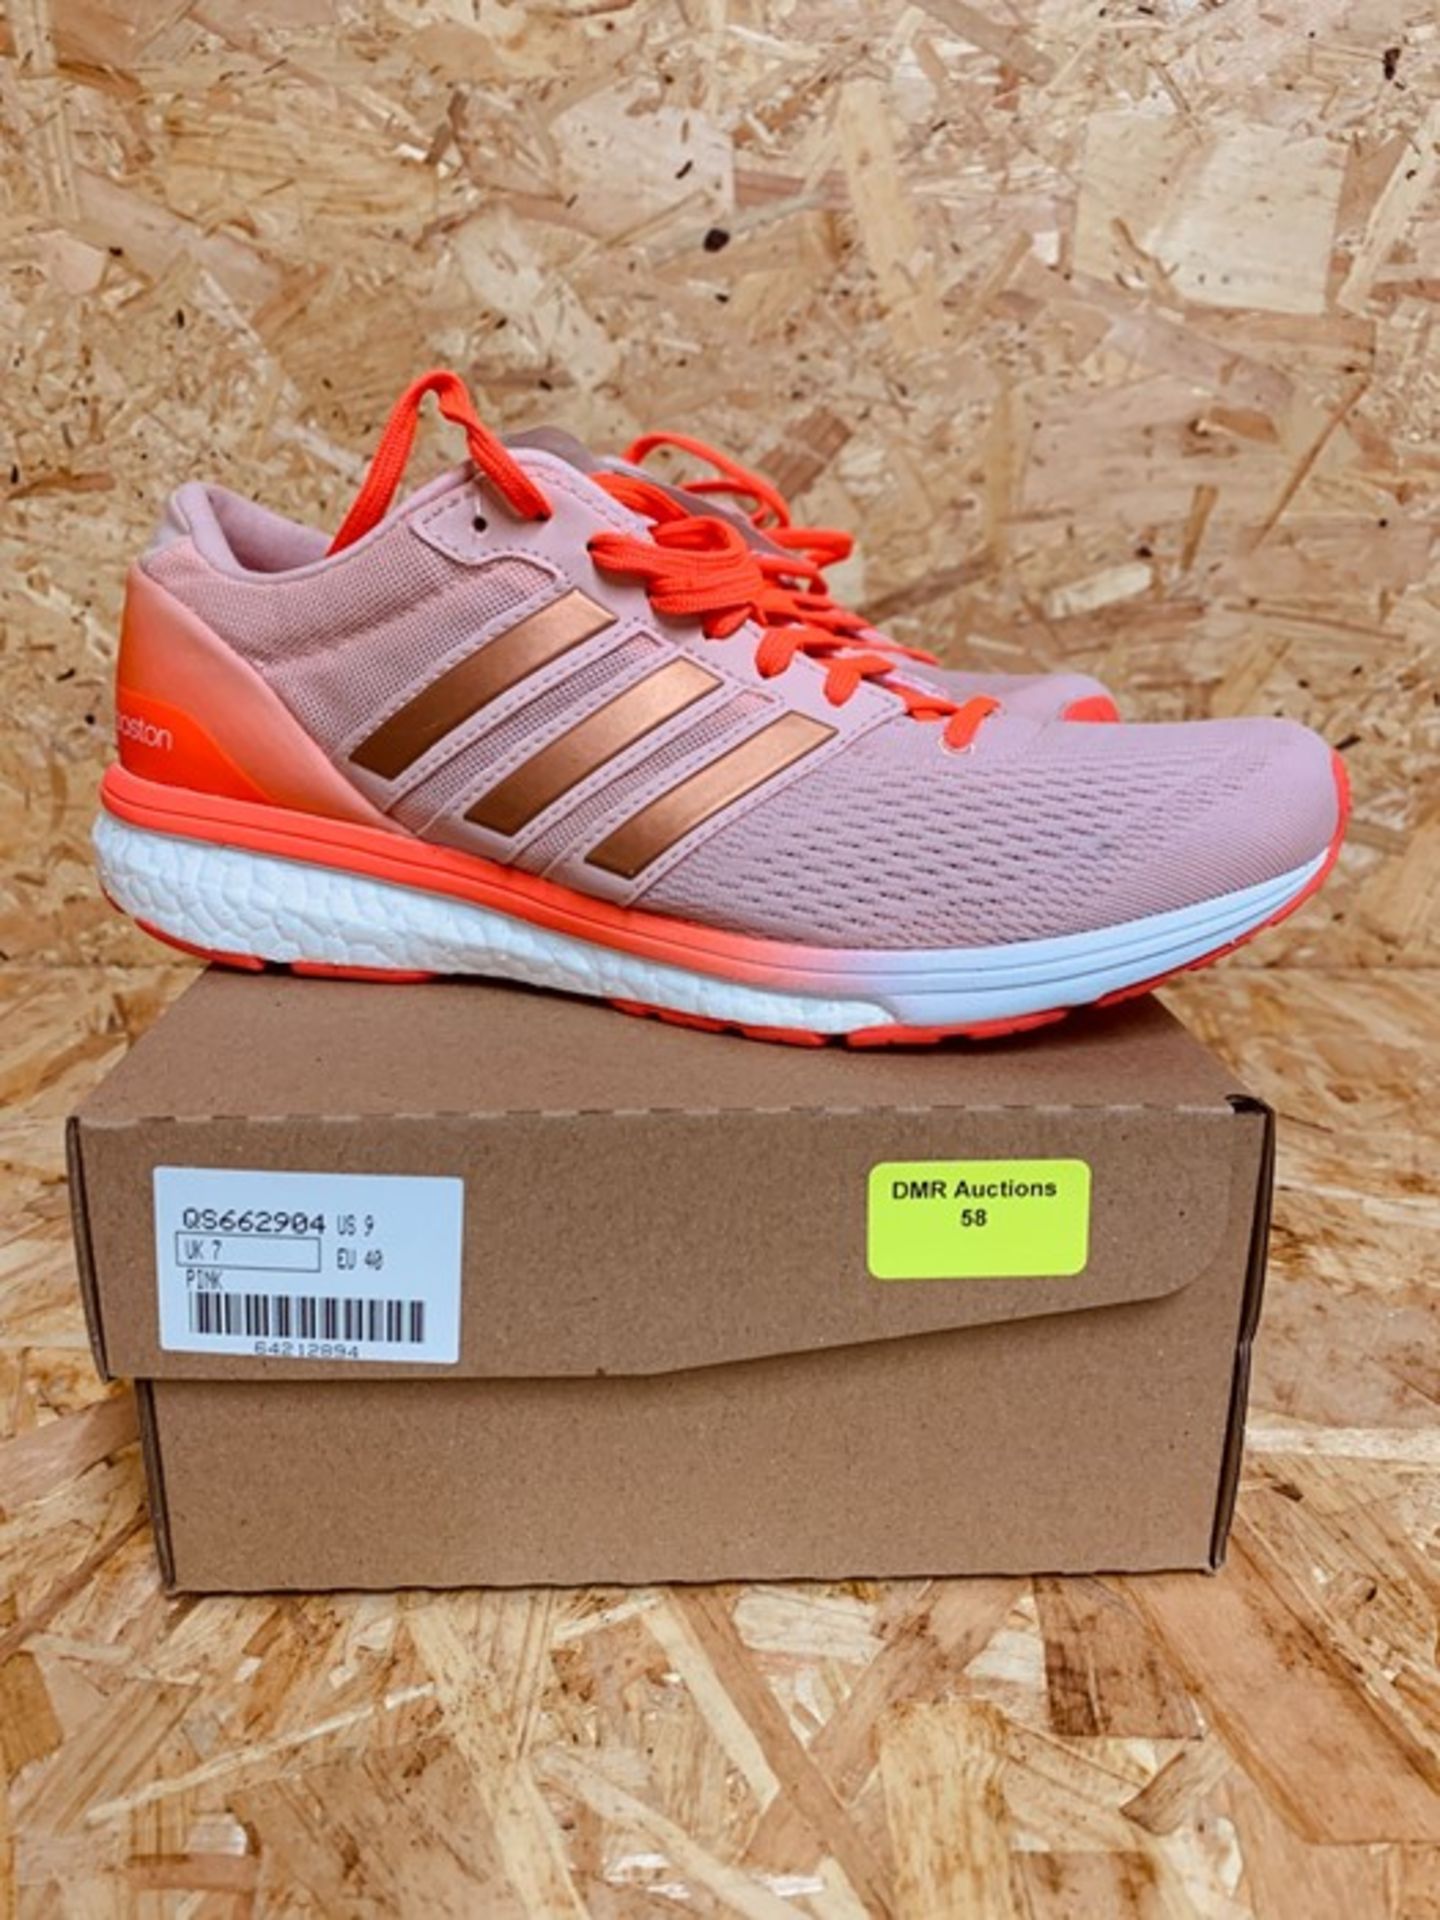 ADIDAS WOMENS ADIZERO BOSTON 6 W - UK SIZE 7/PINK